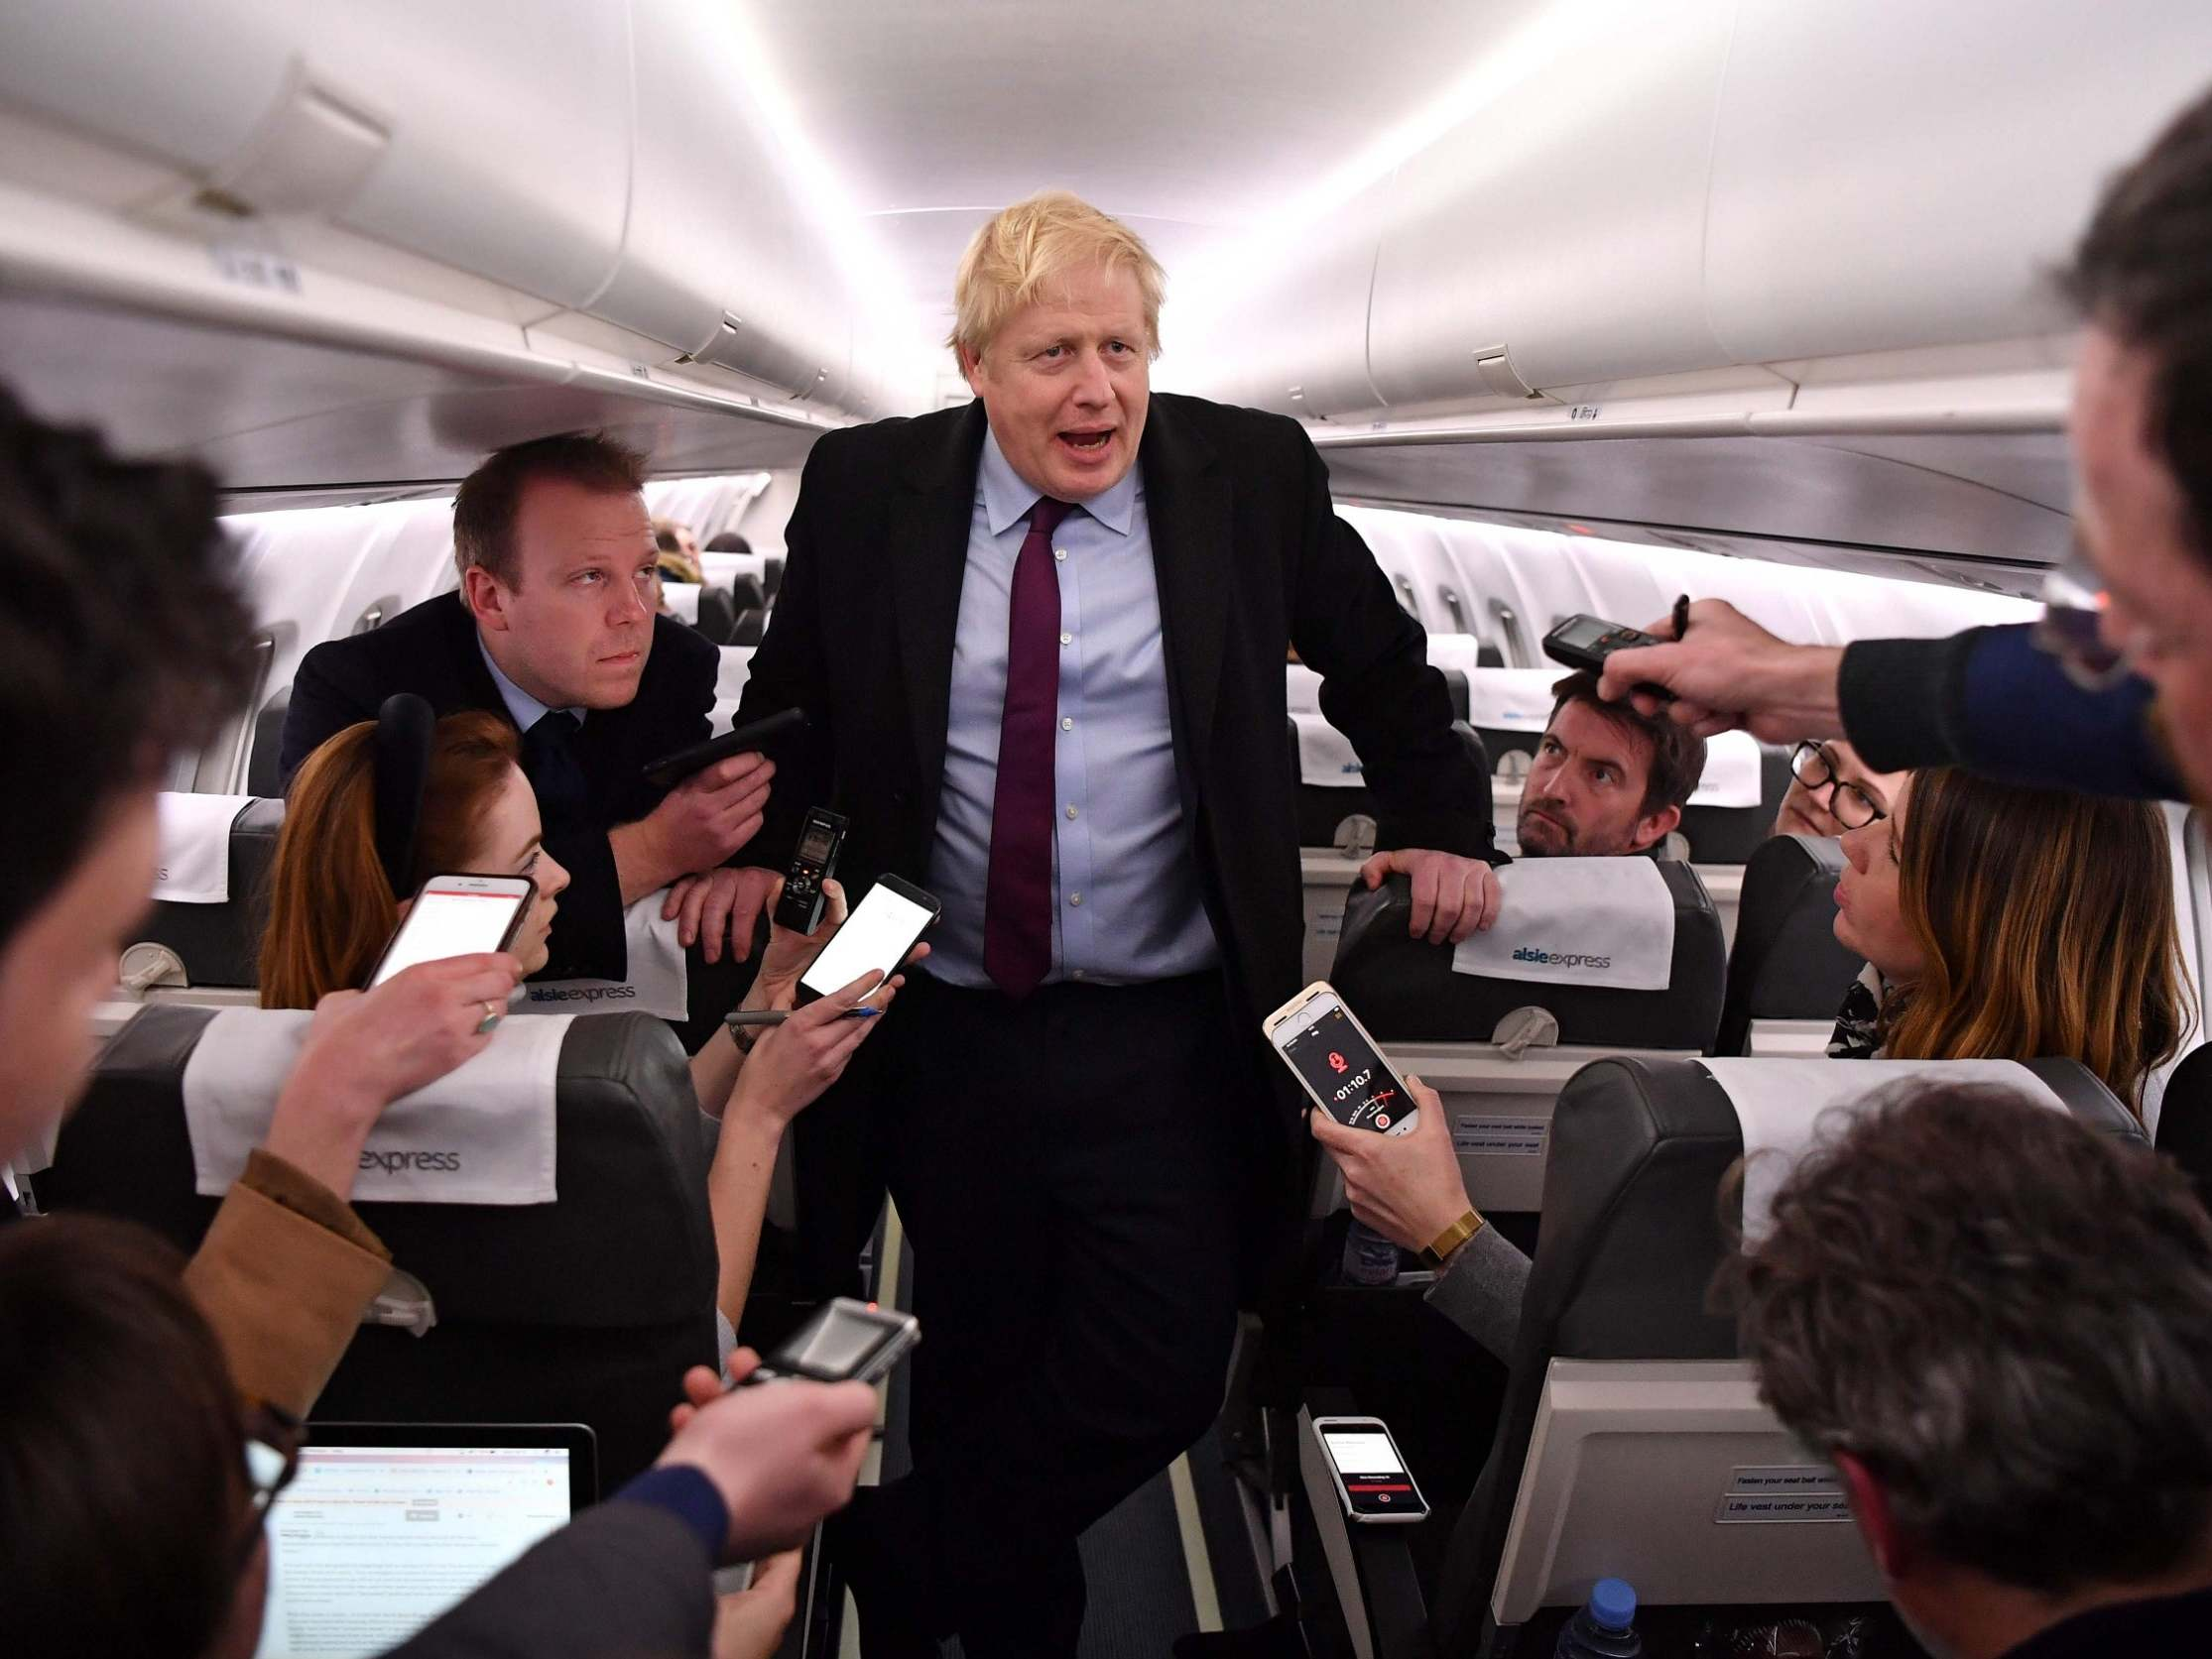 General election news – live: Boris Johnson 'did not contact' family of London Bridge terror victim, as PM faces fresh accusations on NHS crisis